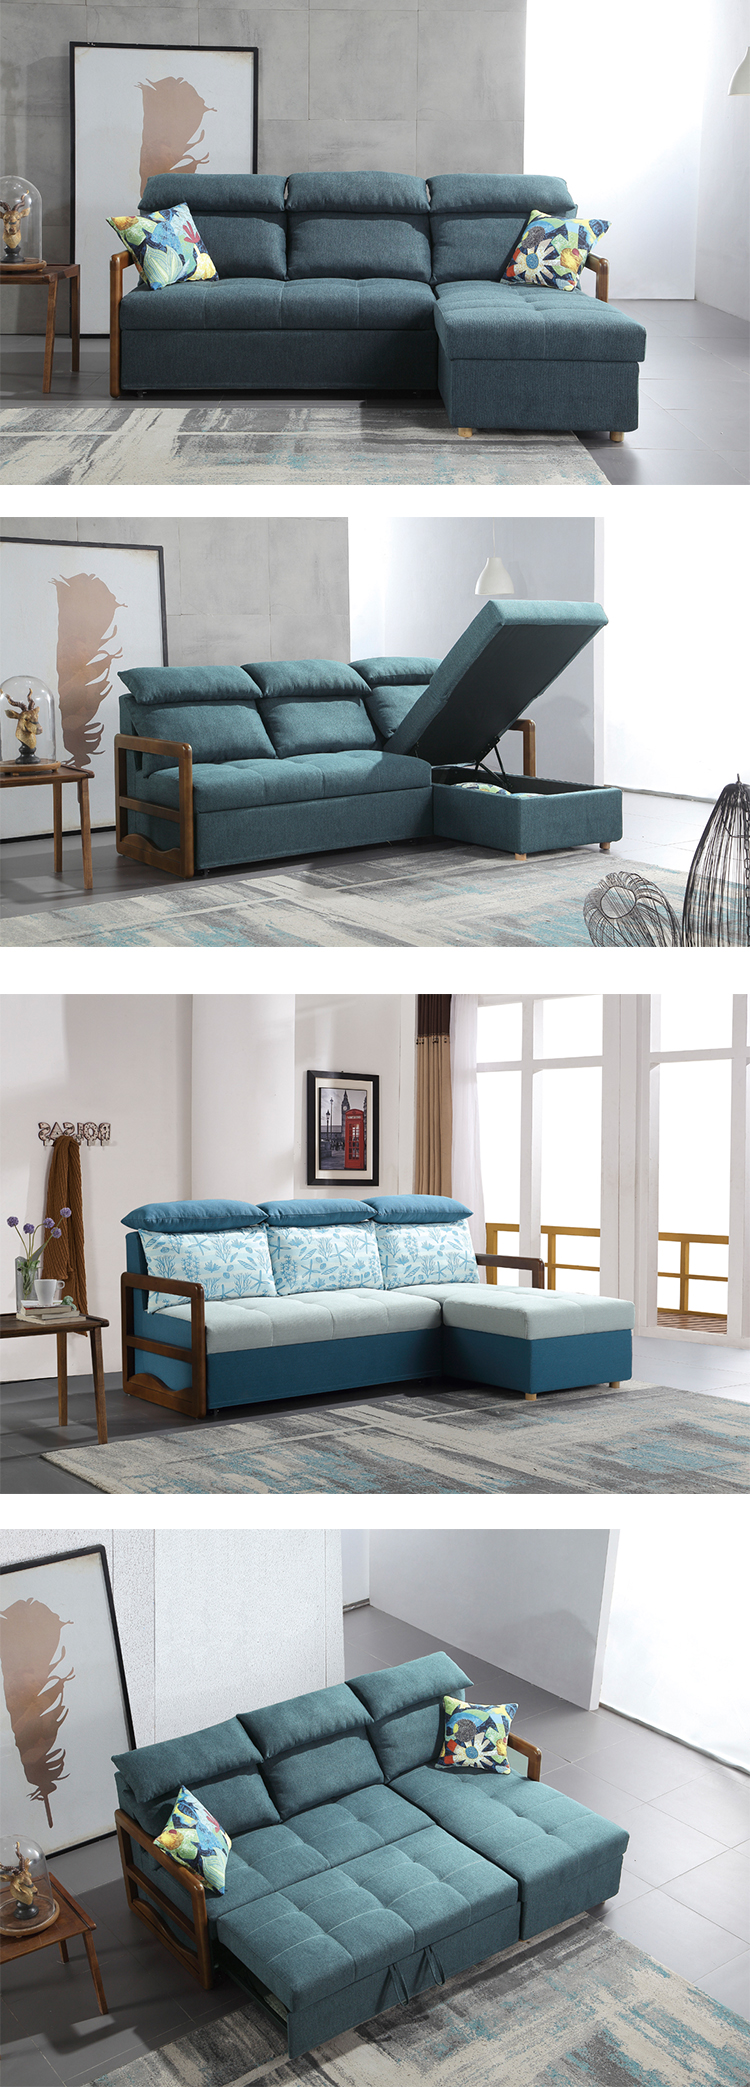 Chinese style blue fabric solid wood l shape storage corner sofa bed